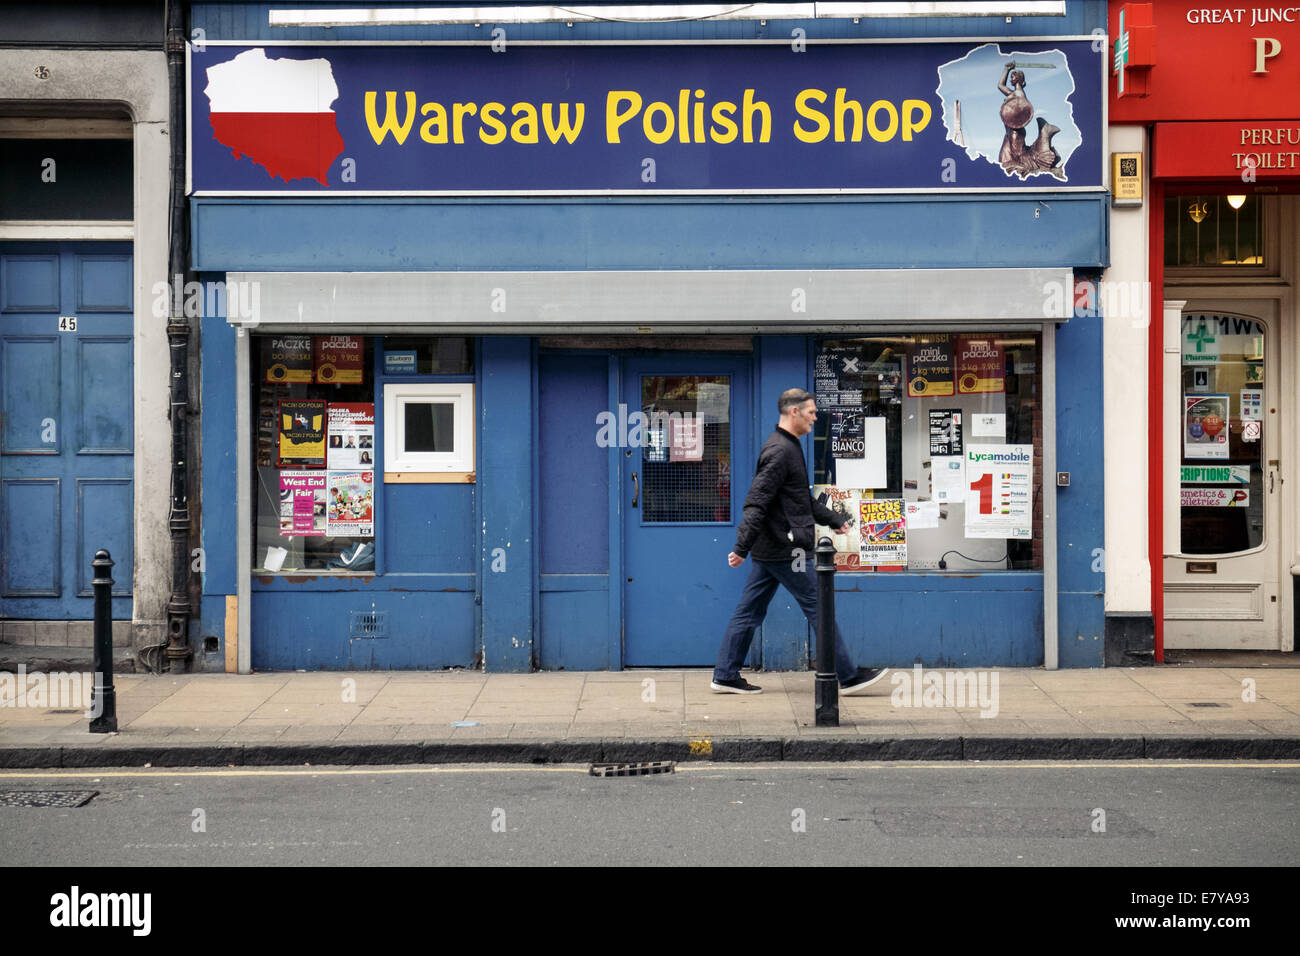 Man walking past Warsaw Polish Shop in Leith, Edinburgh - Stock Image